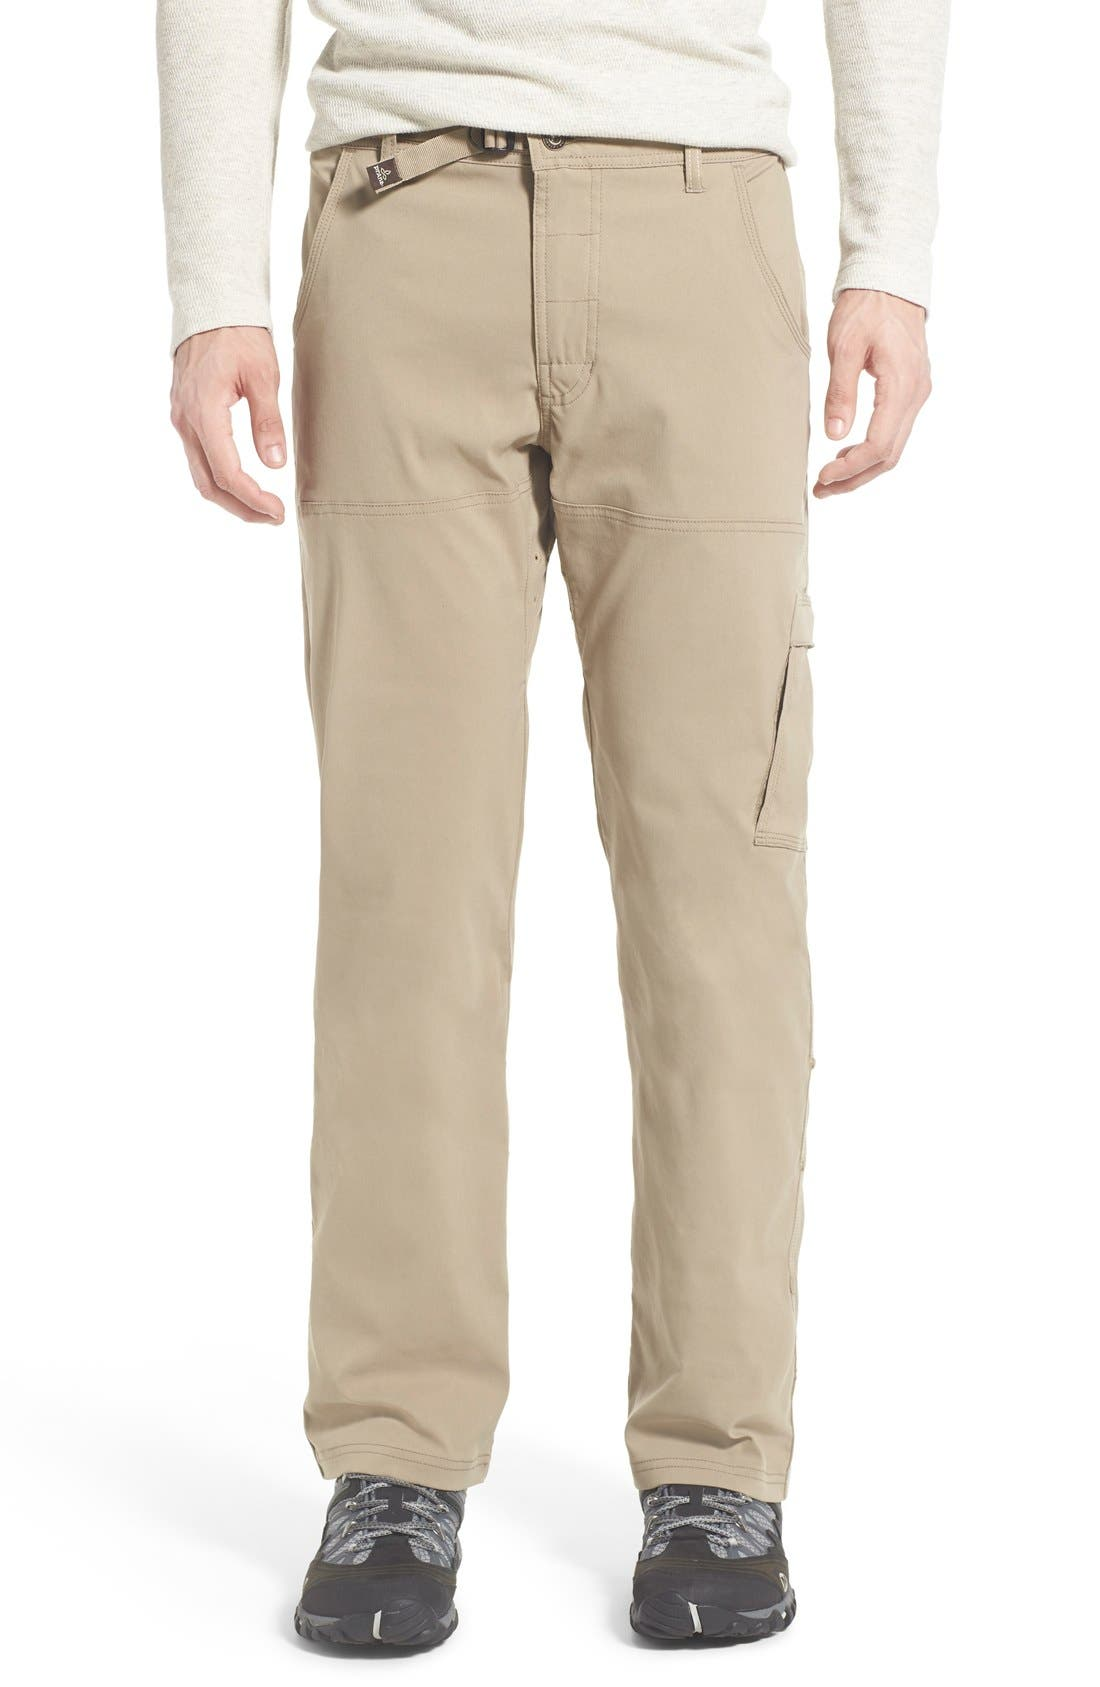 Alternate Image 1 Selected - prAna Zion Stretch Pants